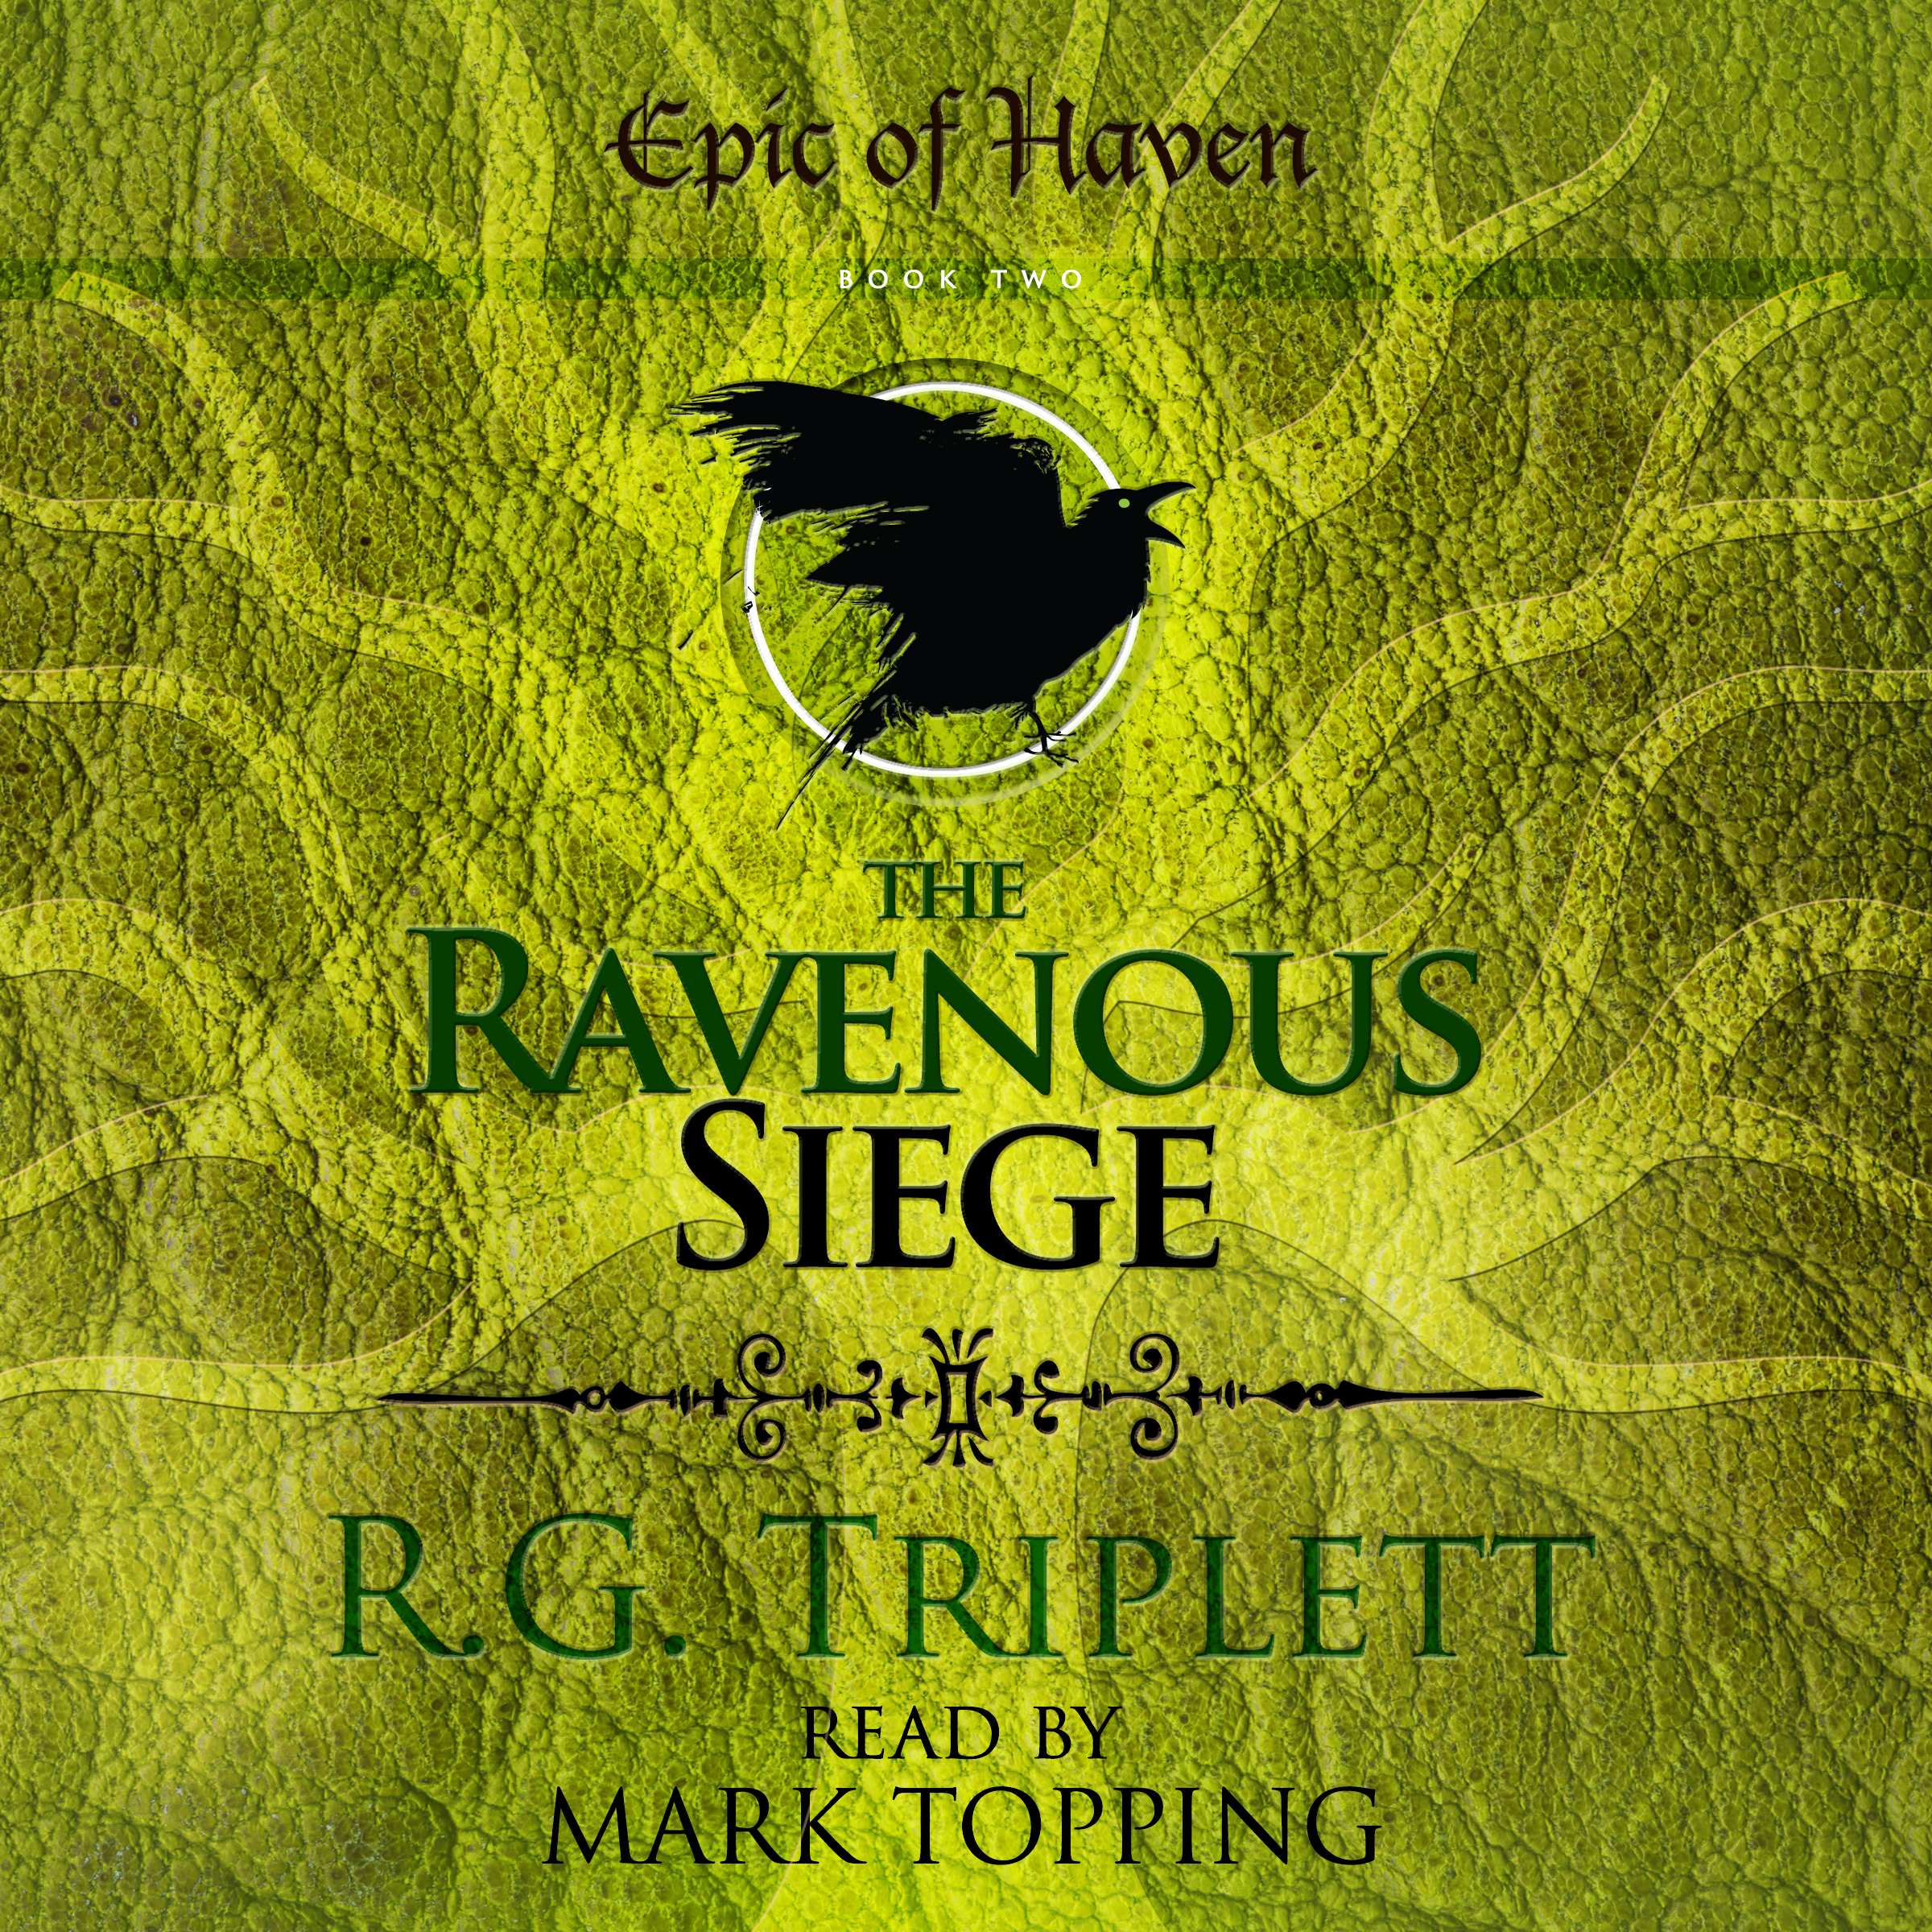 TRS Audio Book Cover.jpg